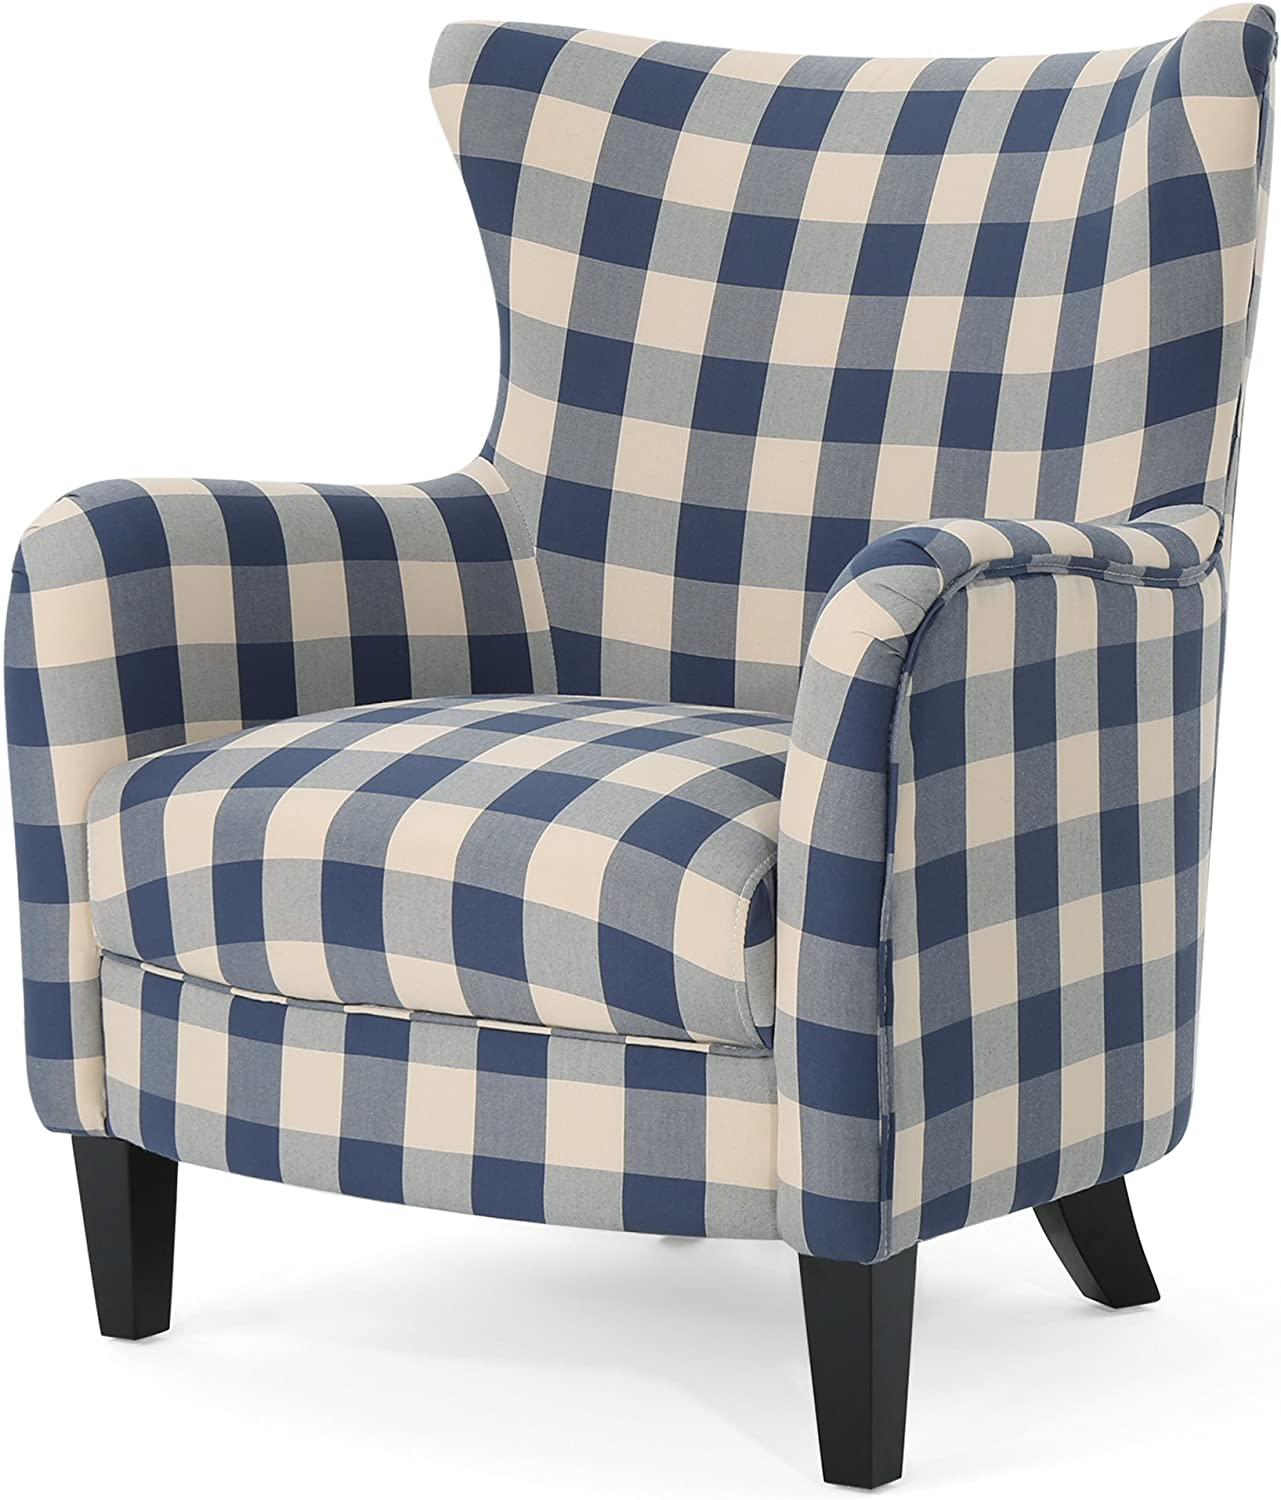 Christopher Knight Home 306114 Oliver Farmhouse Armchair, Blue Checkerboard, Floral